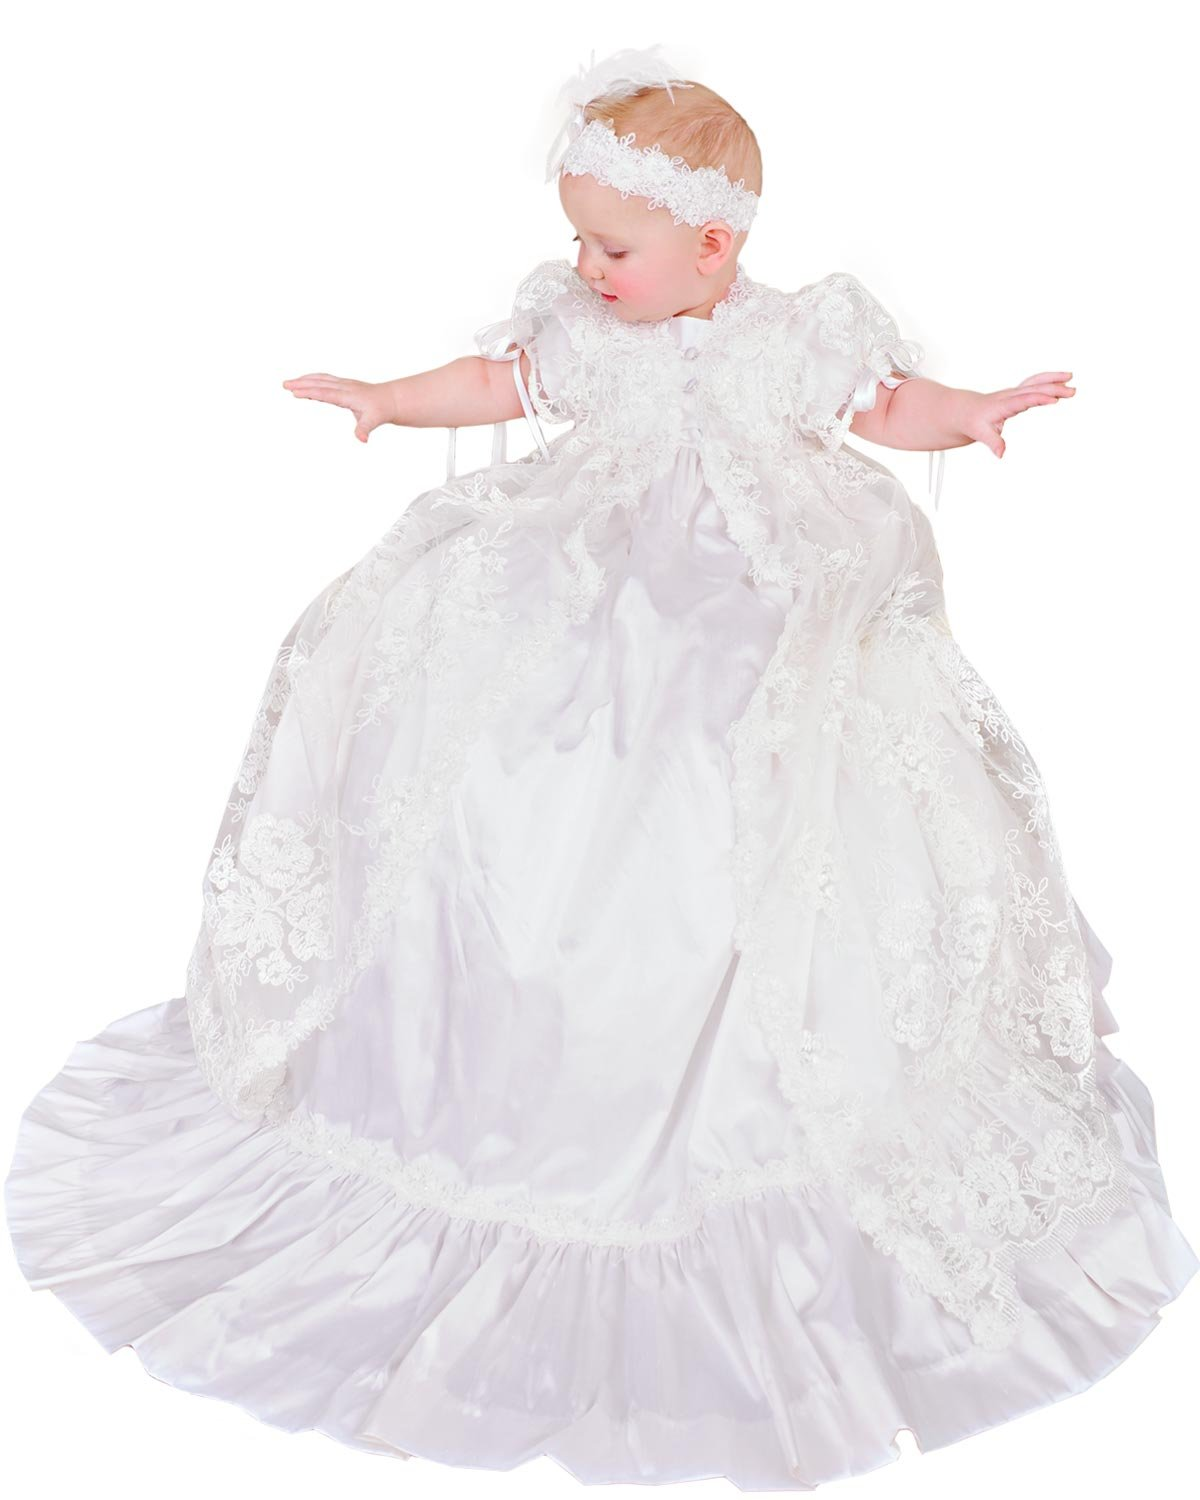 Sophi Silk and Lace Christening or Baptism Gown for Girls